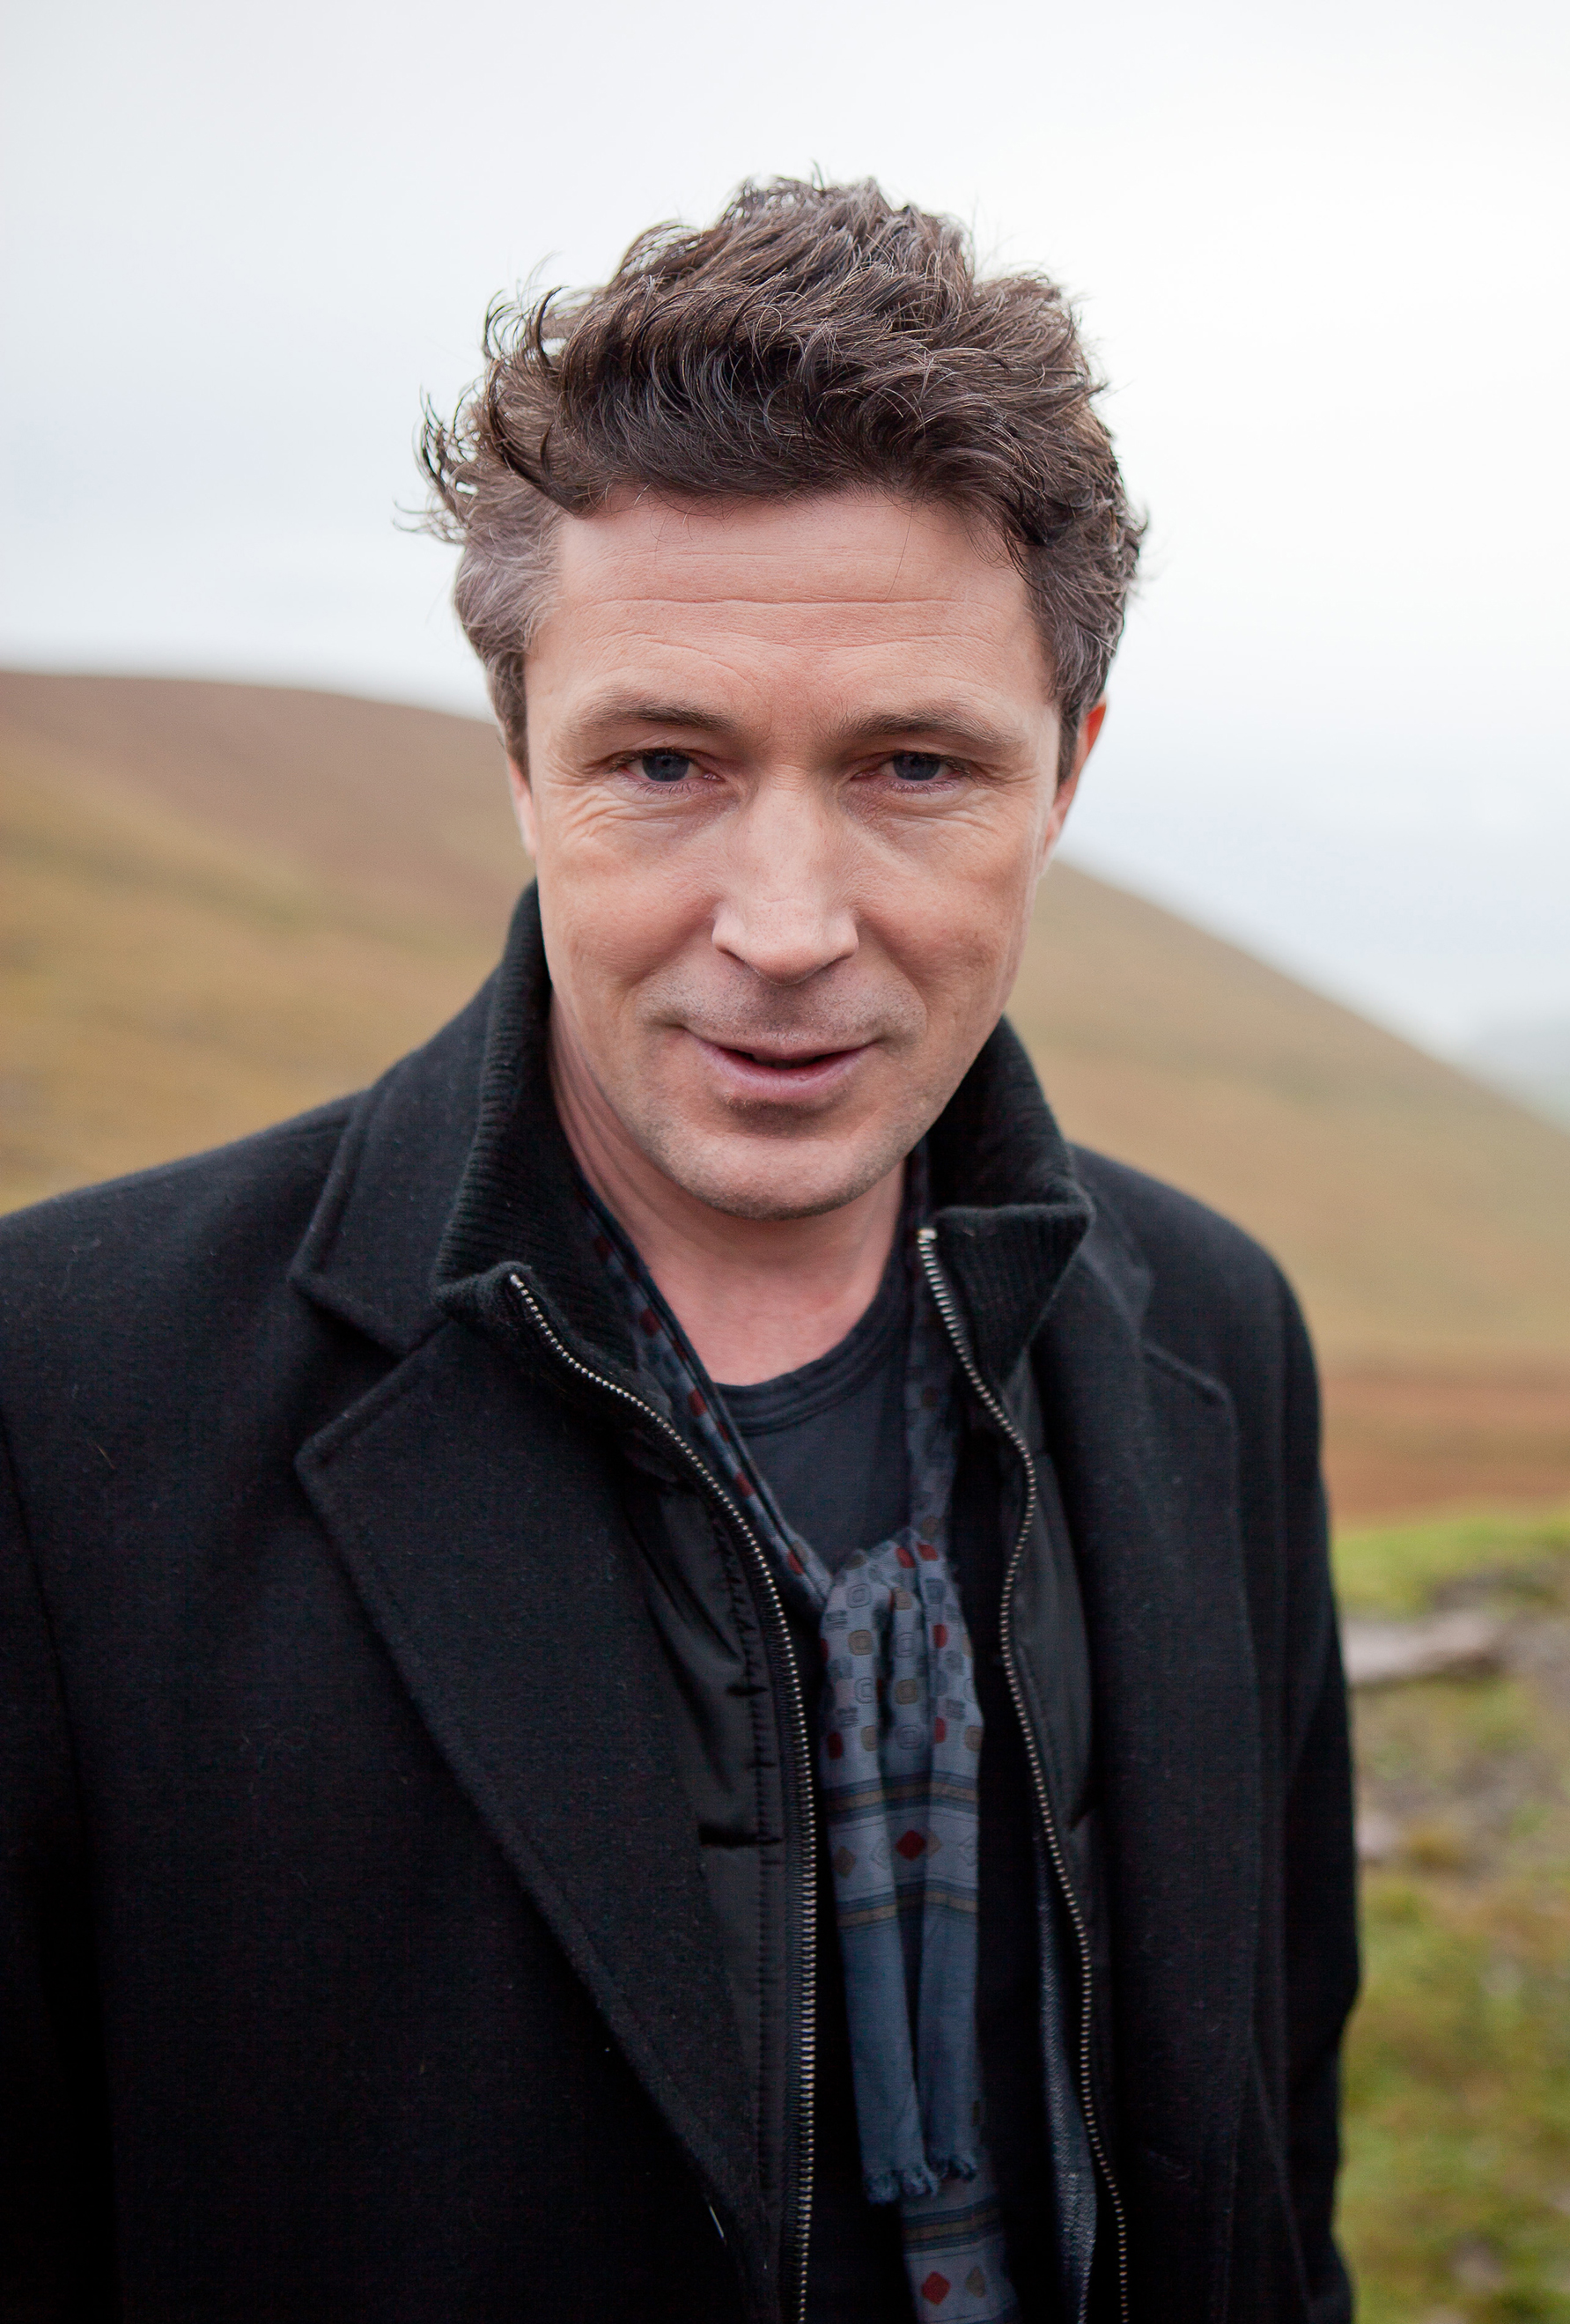 The 50-year old son of father (?) and mother(?), 178 cm tall Aidan Gillen in 2018 photo